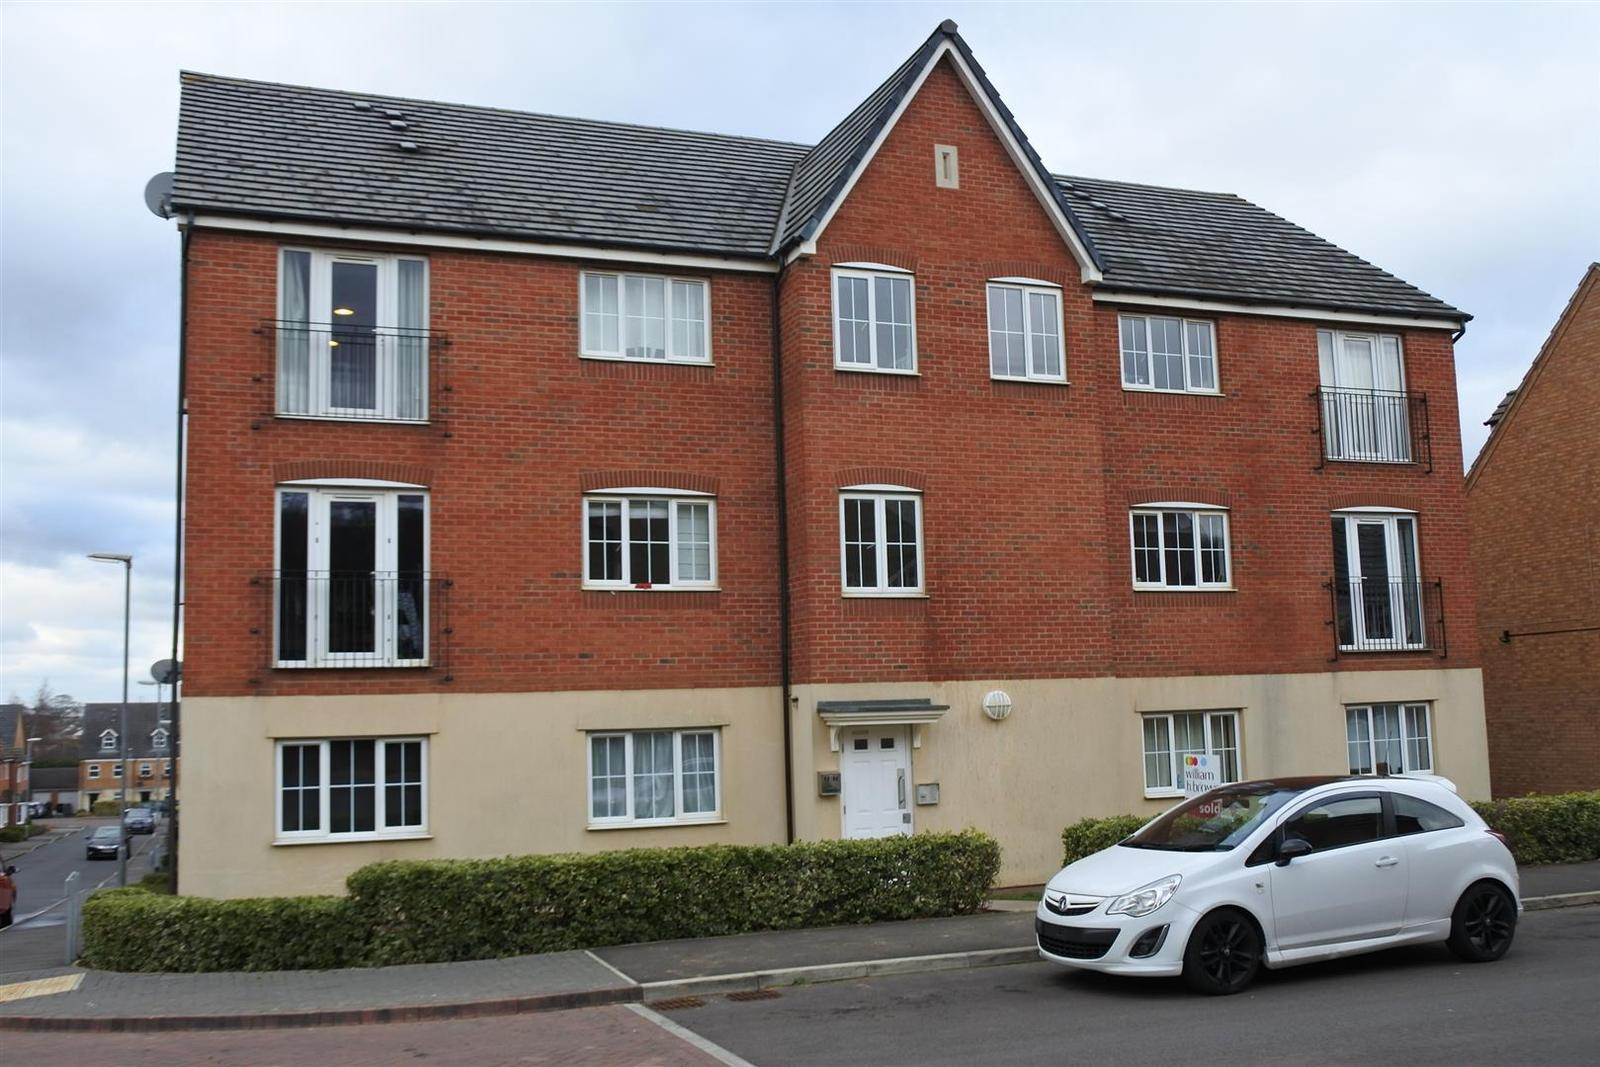 2 Bedrooms Apartment Flat for sale in Scarsdale Way, Grantham